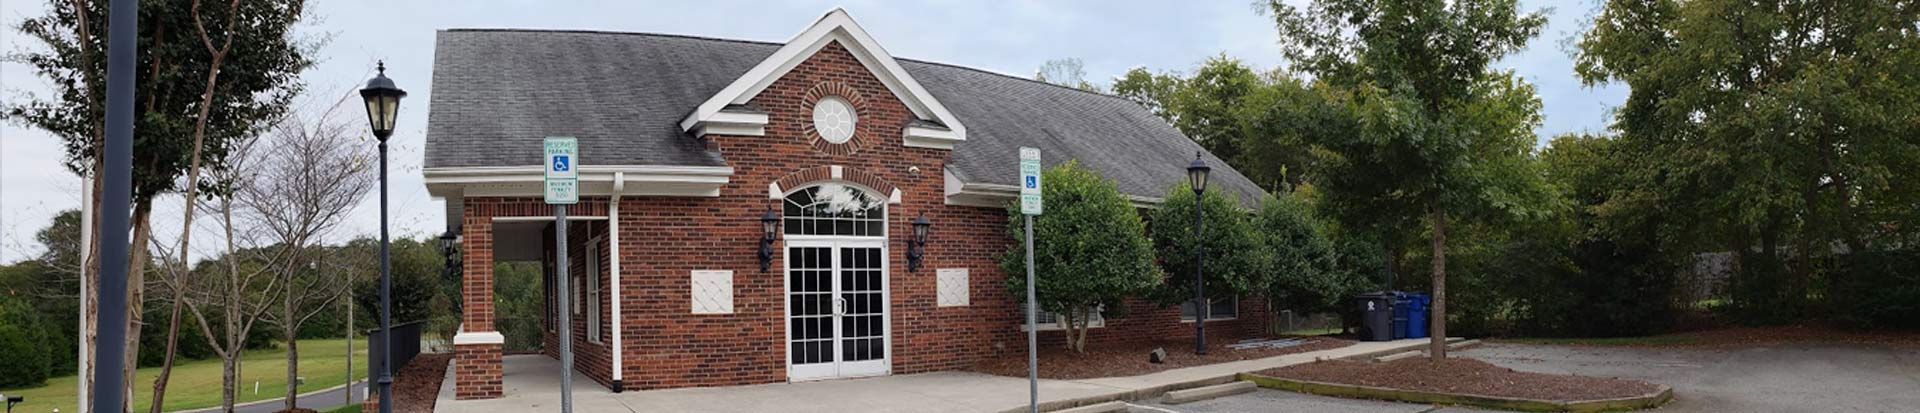 Village of Alamance Town Hall Banner